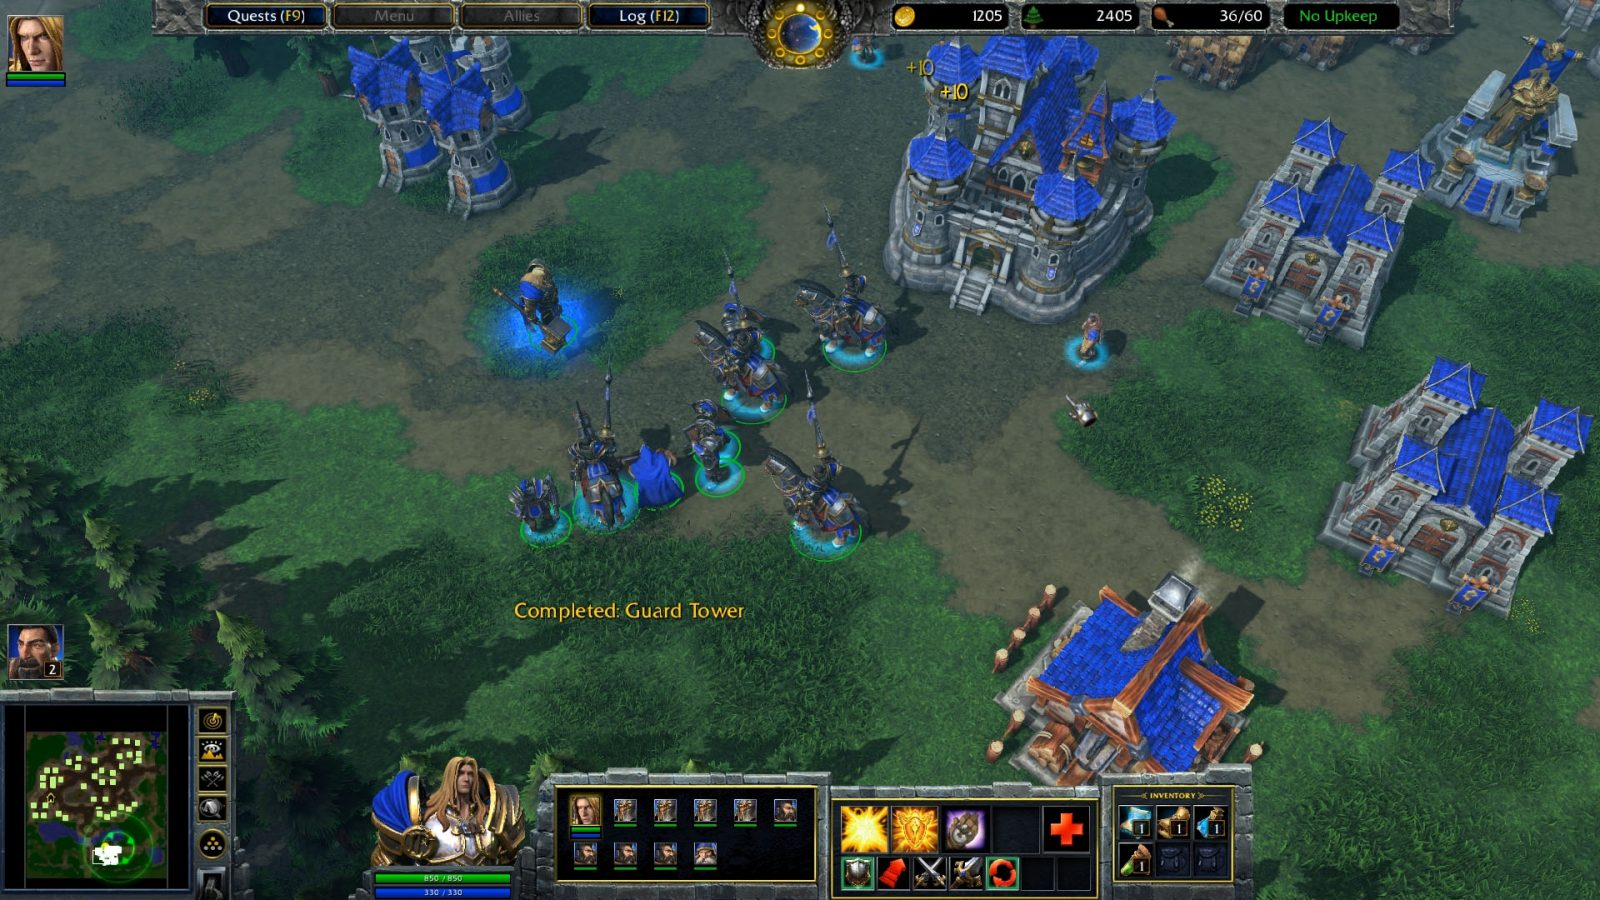 Warcraft III: Reforged Launches January 28, 2020